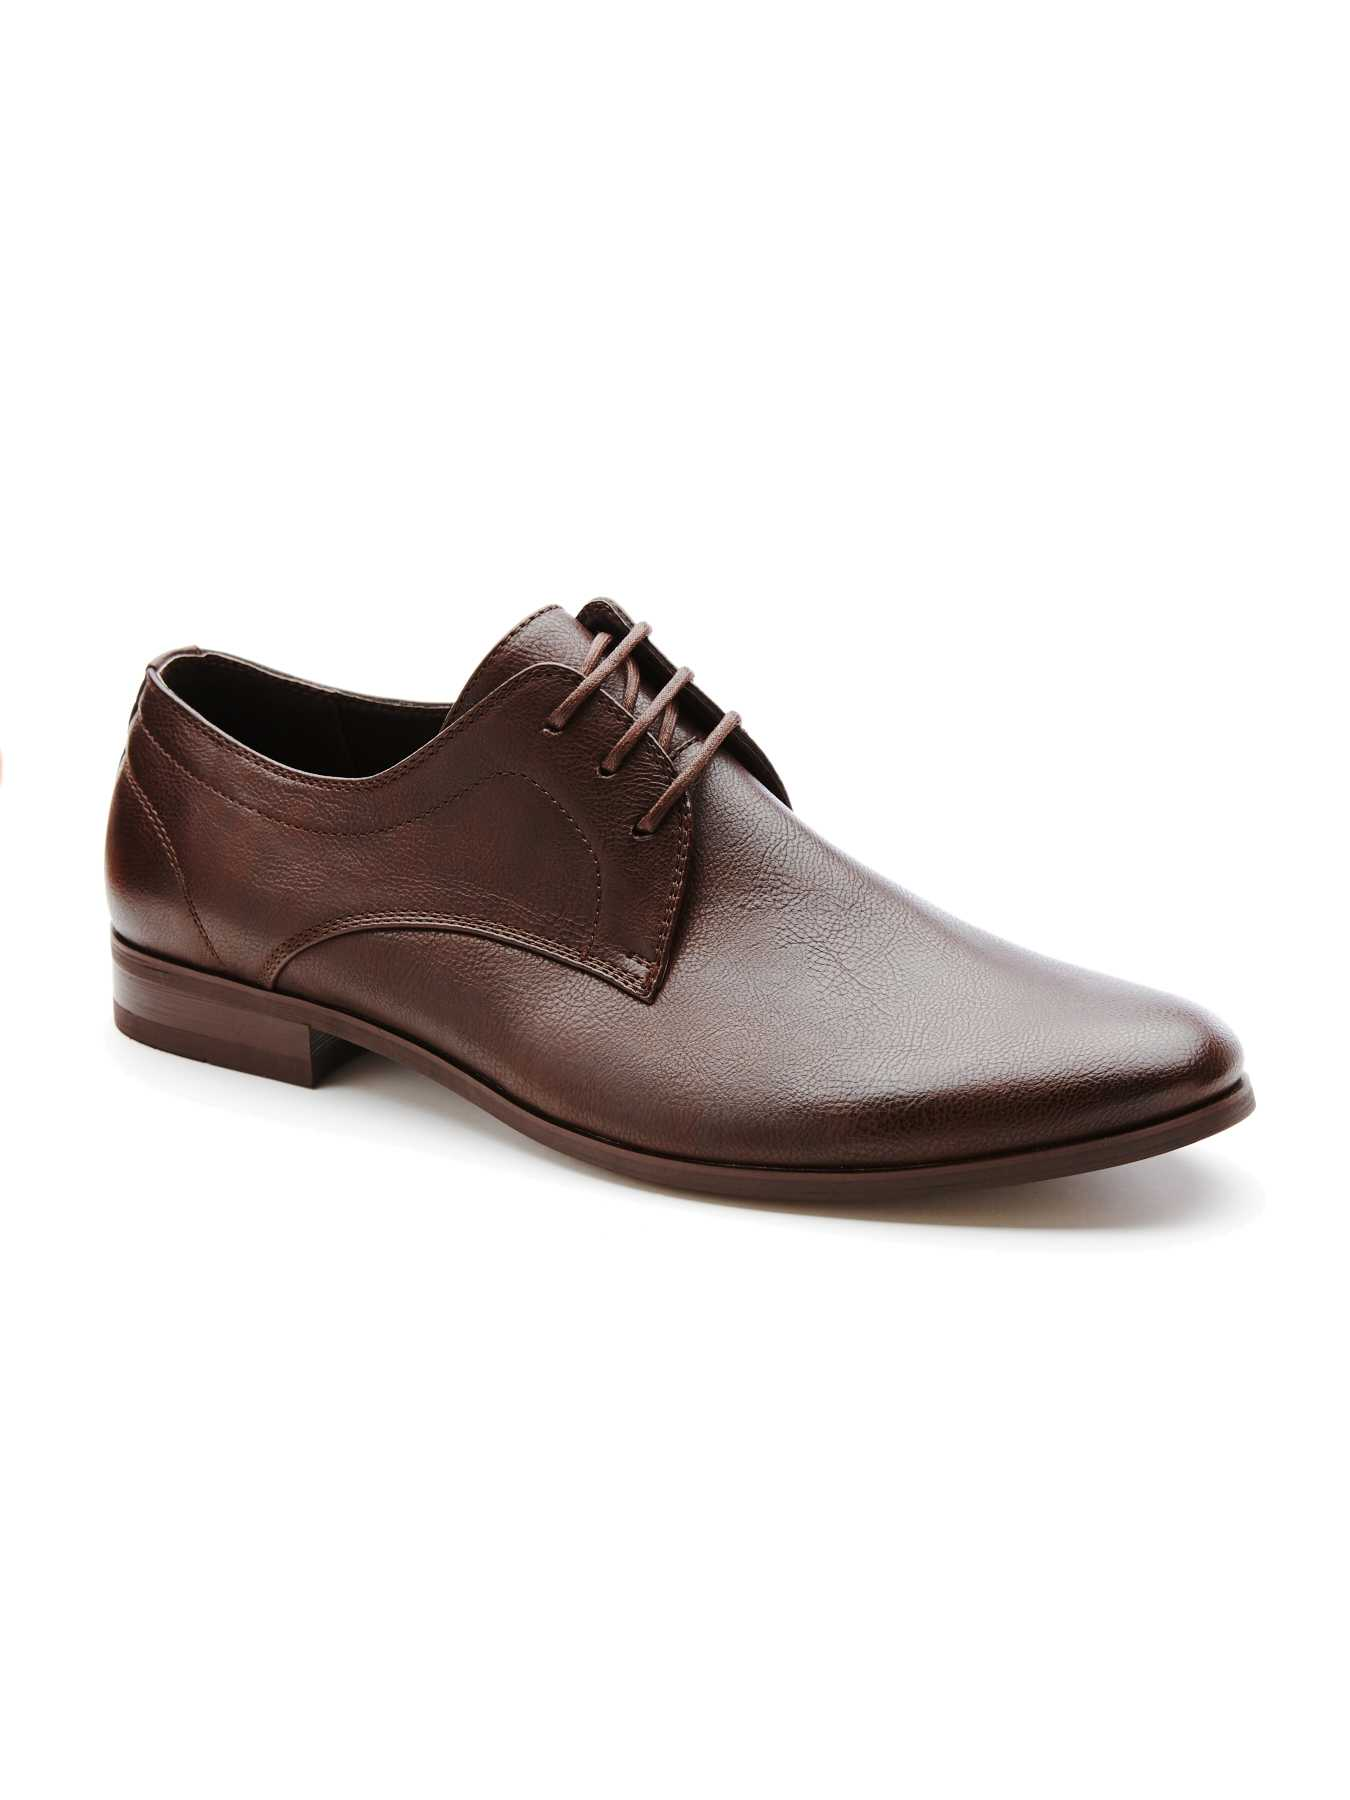 Ryan Portfolio Dress Shoe